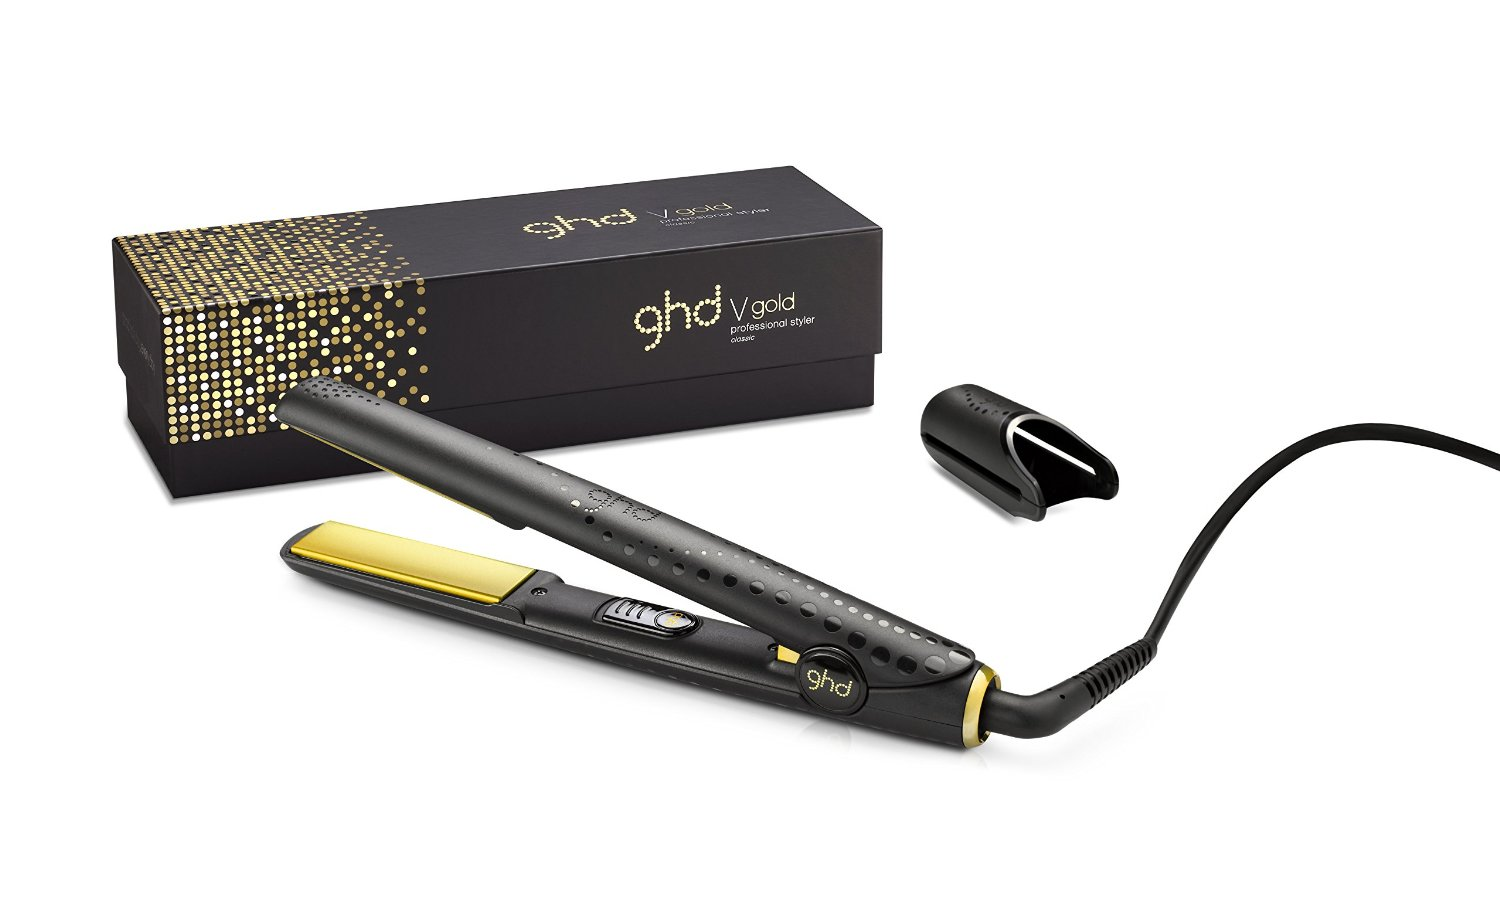 ghd-eclipse-gold-opiniones